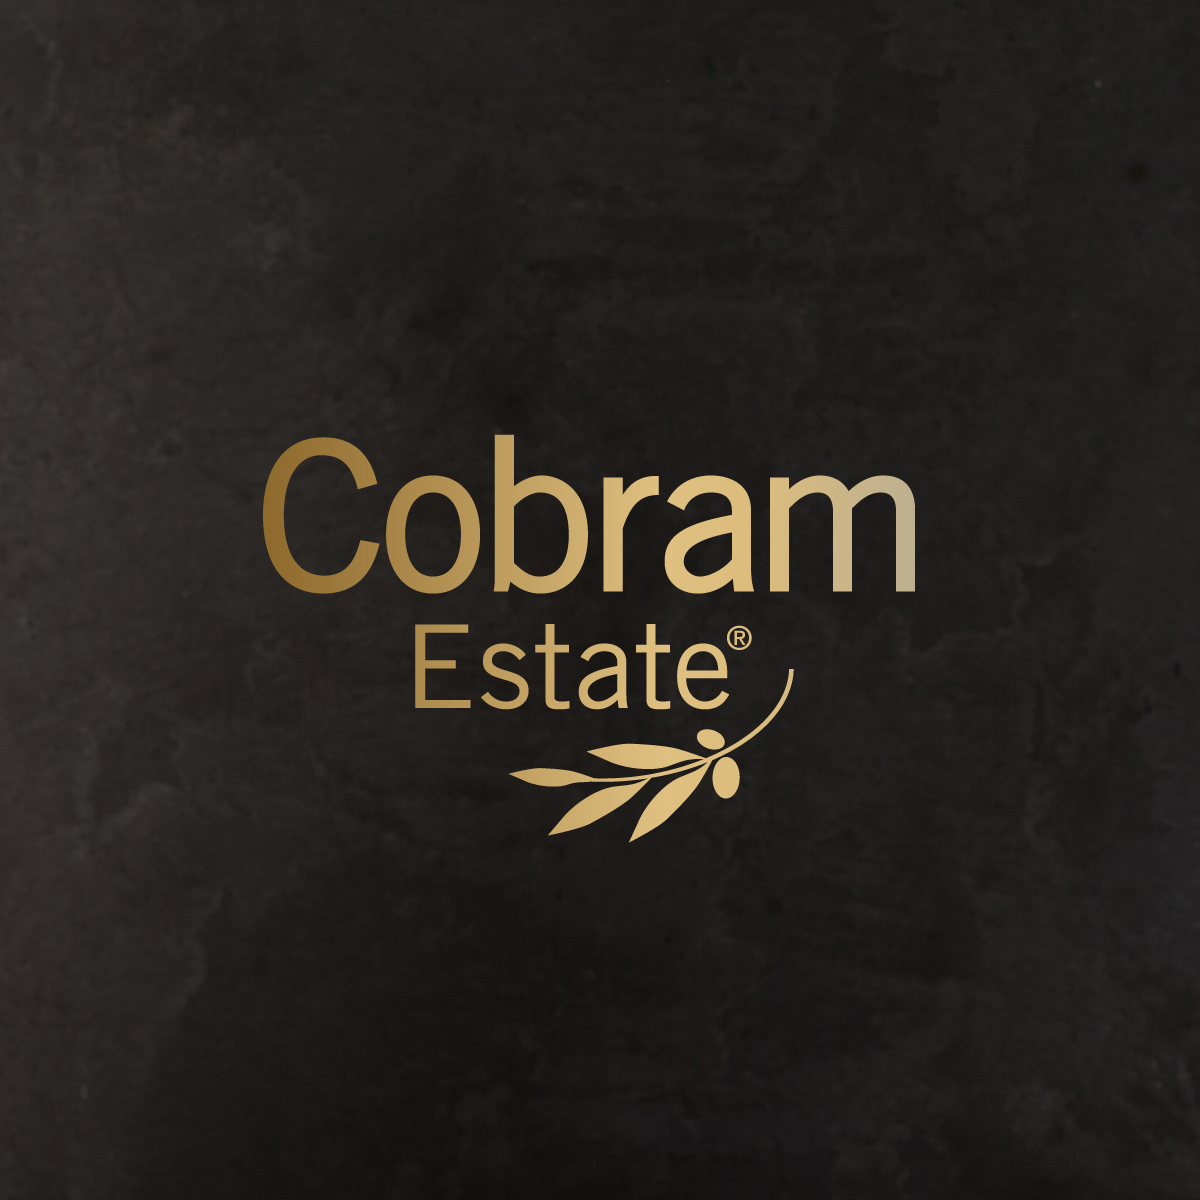 cobram estate brand mark black background